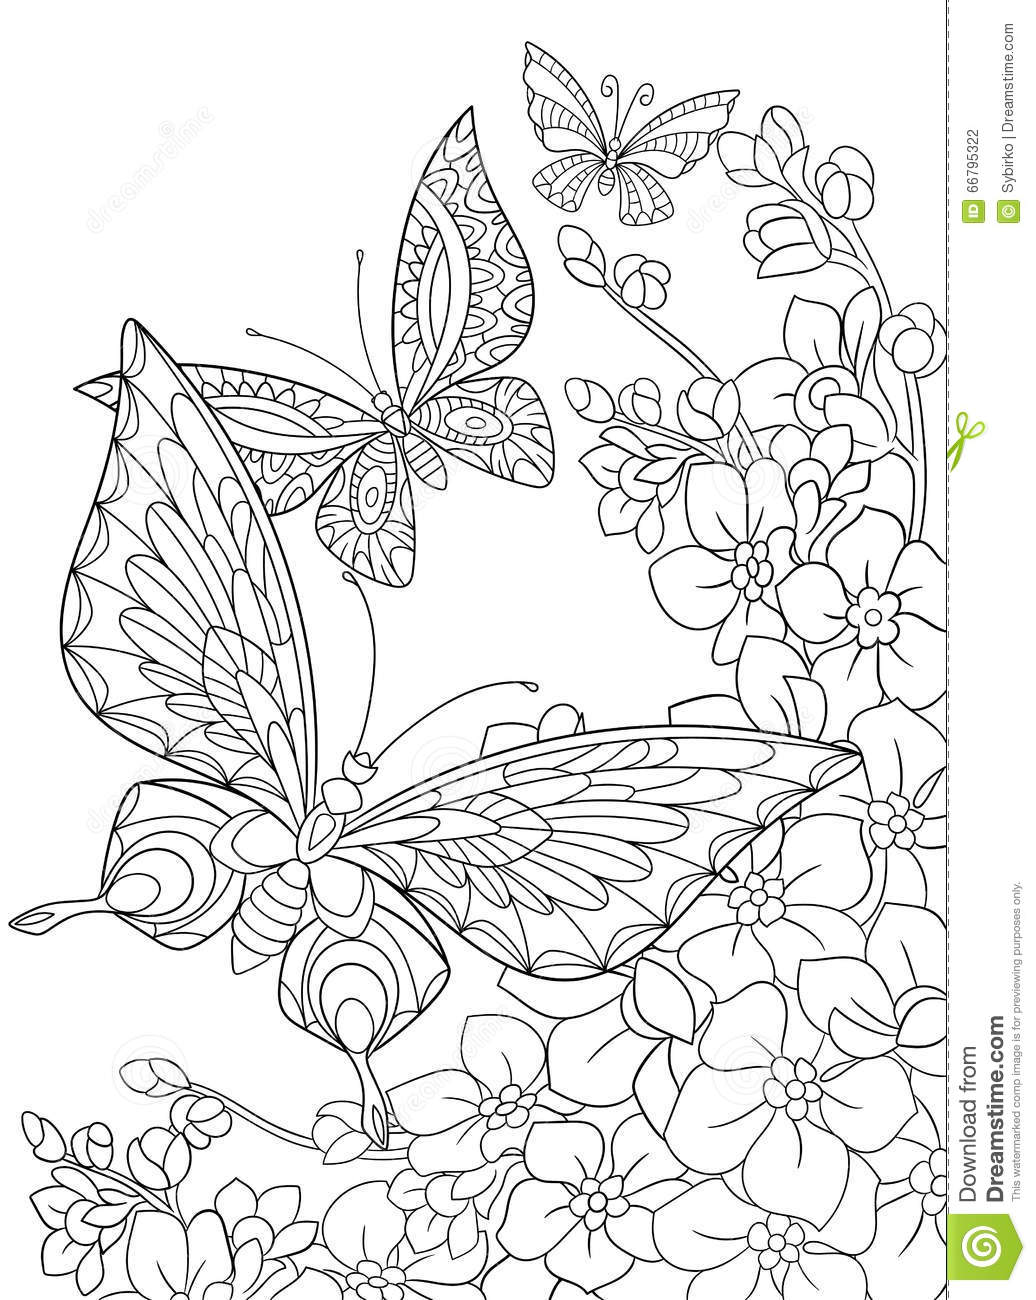 Zentangle Stylized Butterflies And Sakura Flower Stock